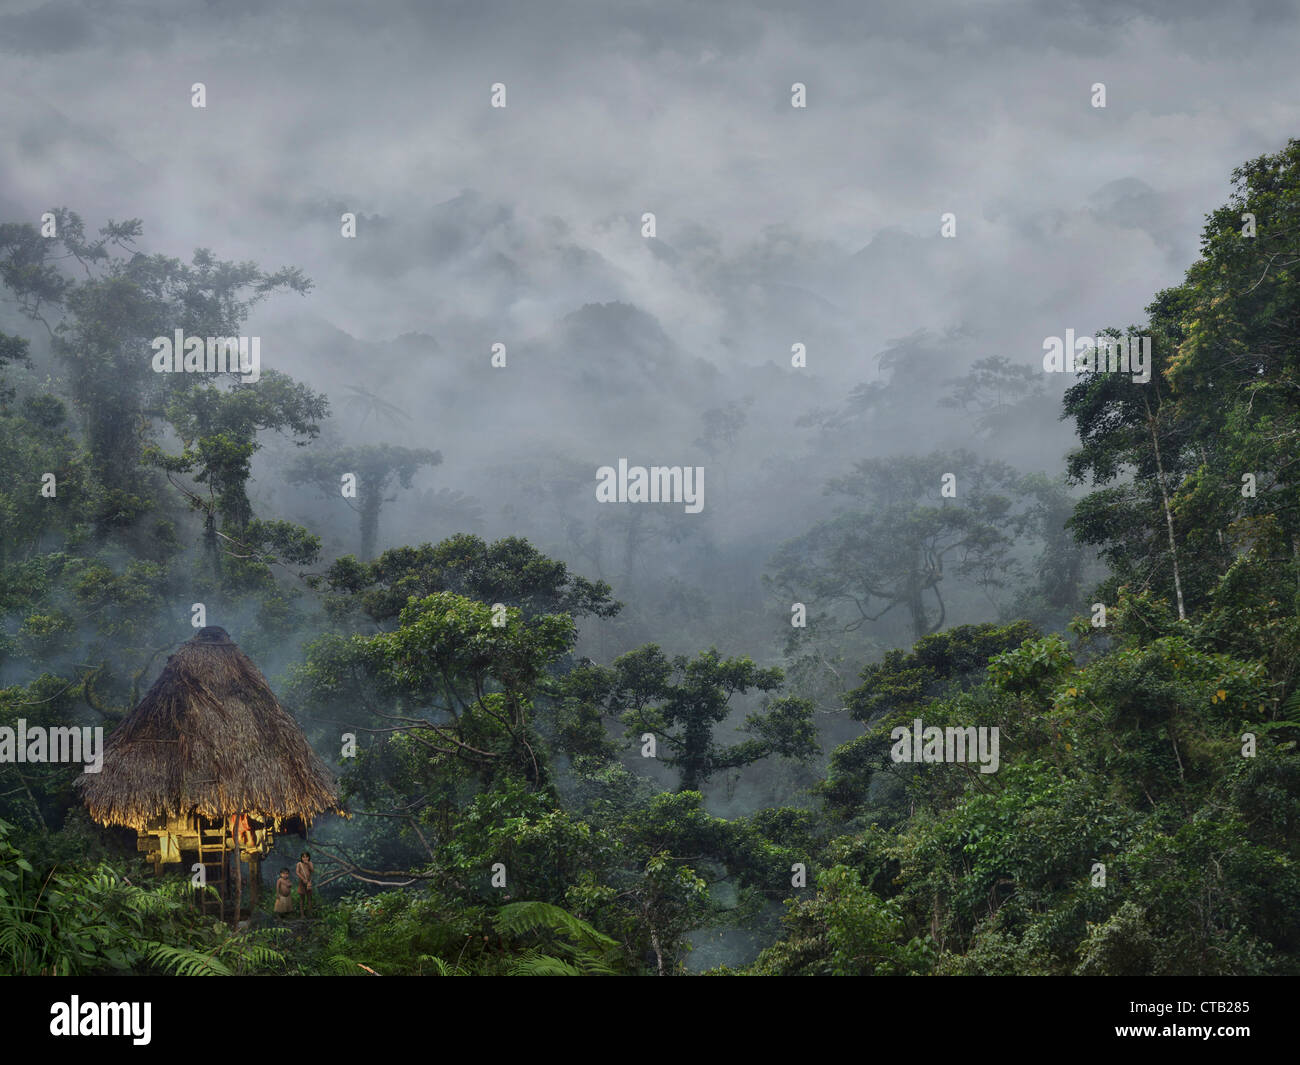 Ifugao children beside hut in a tropical rainforest, Banaue, Ifugao, Luzon Island, Philippines, Asia - Stock Image